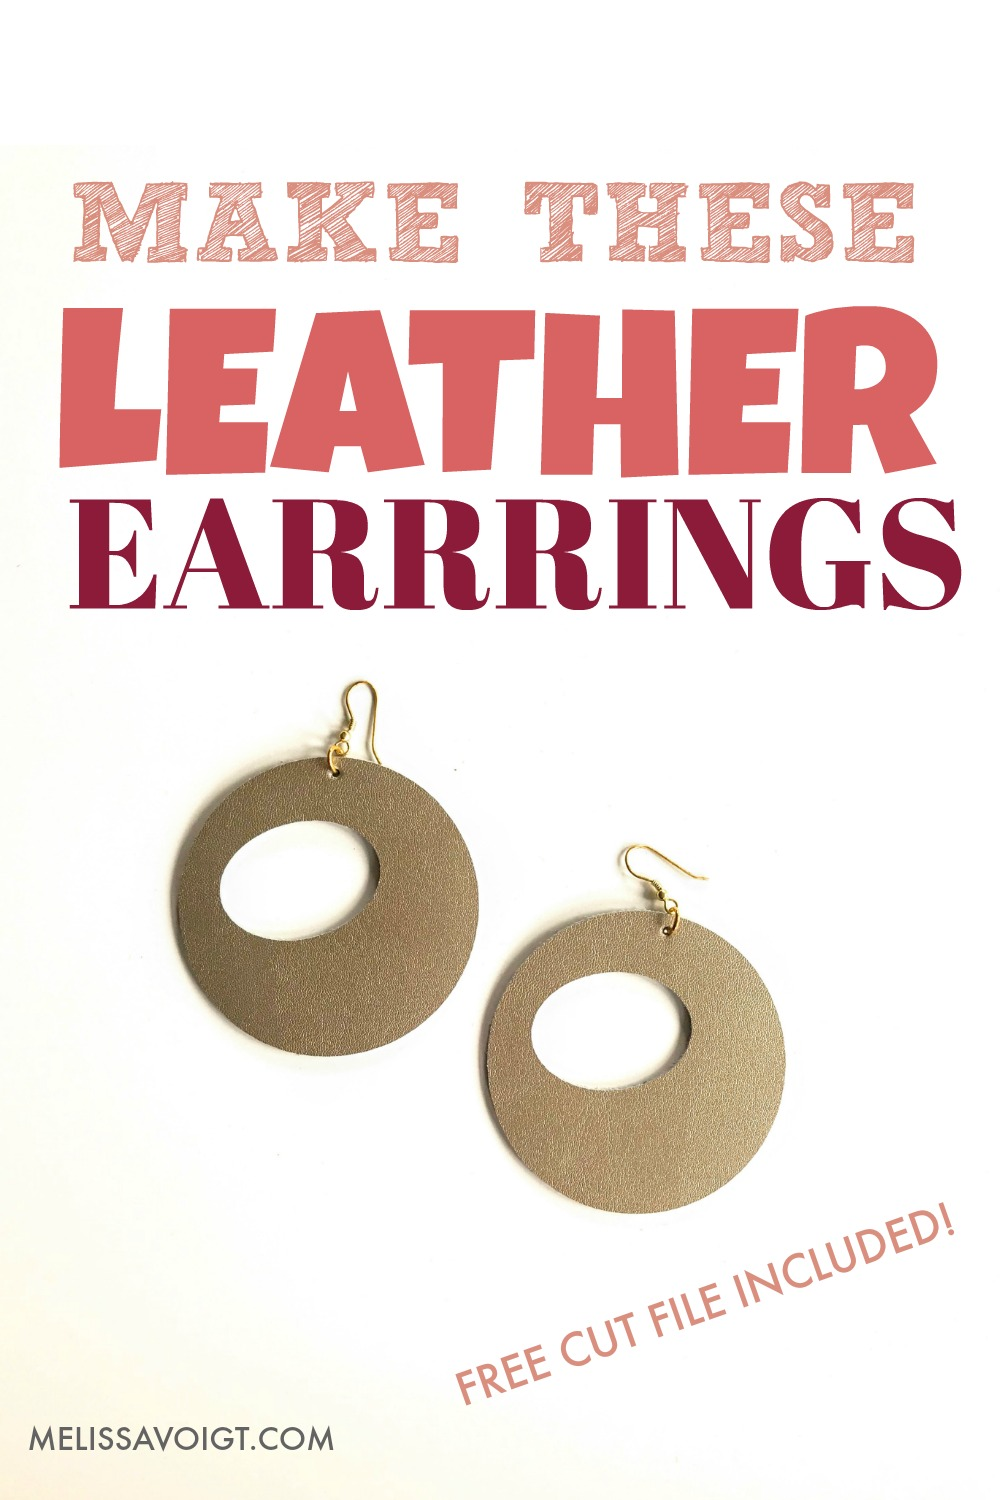 CIRCLE LEATHER EARRINGS ON CRIUCT.jpg